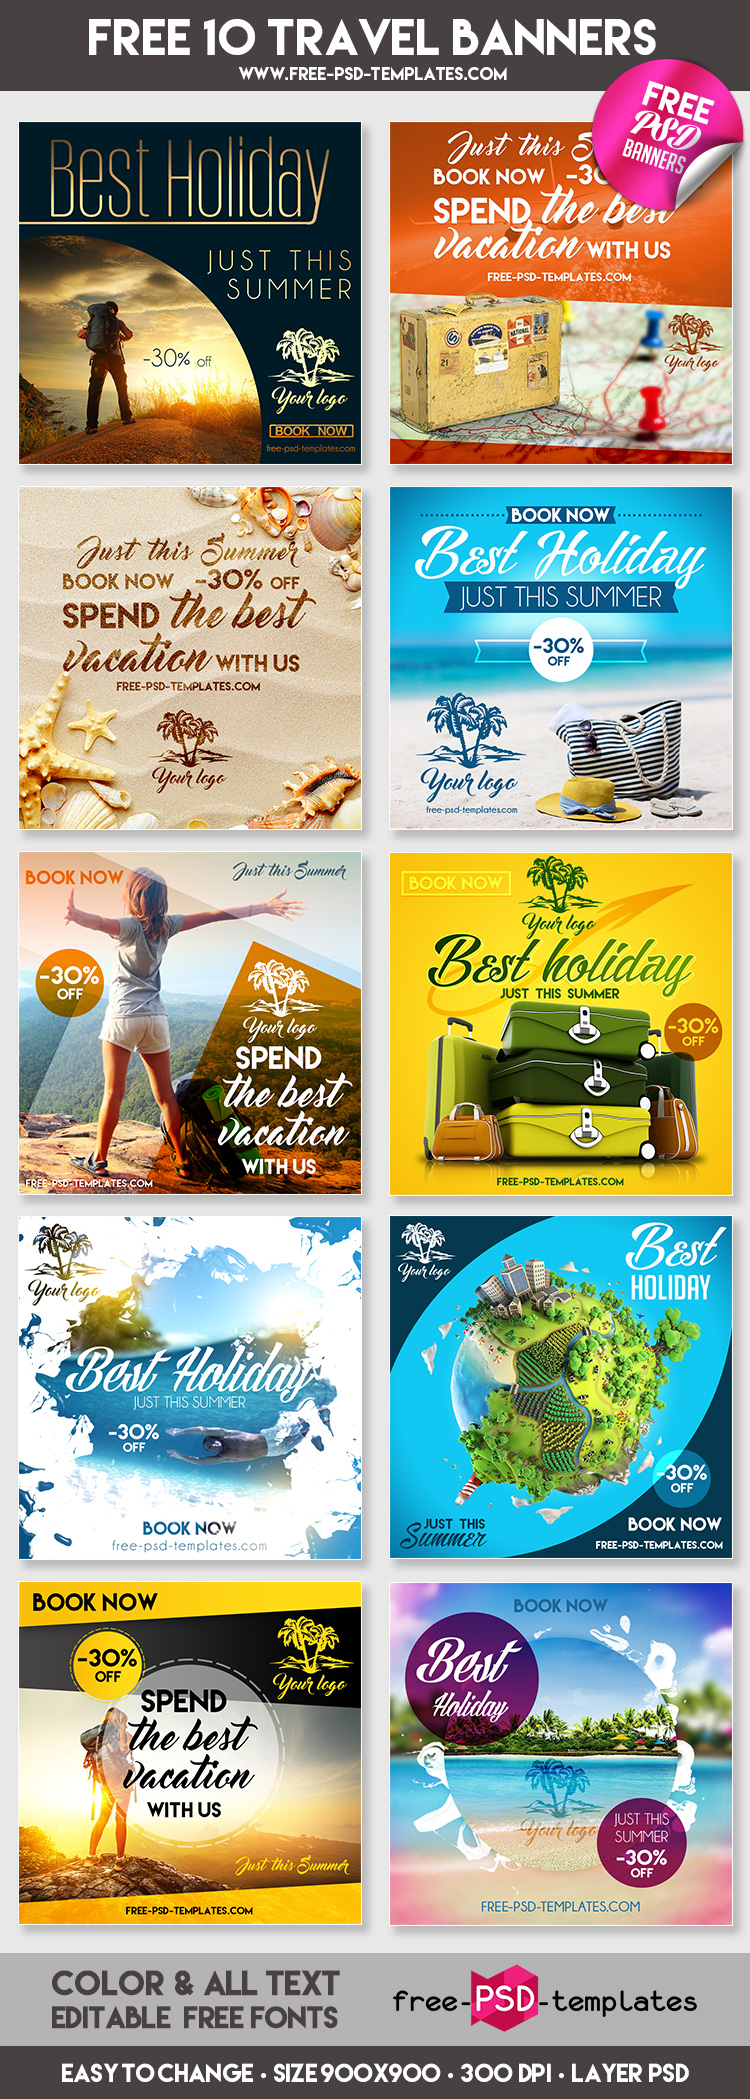 Preview_Free_Travel_Banners